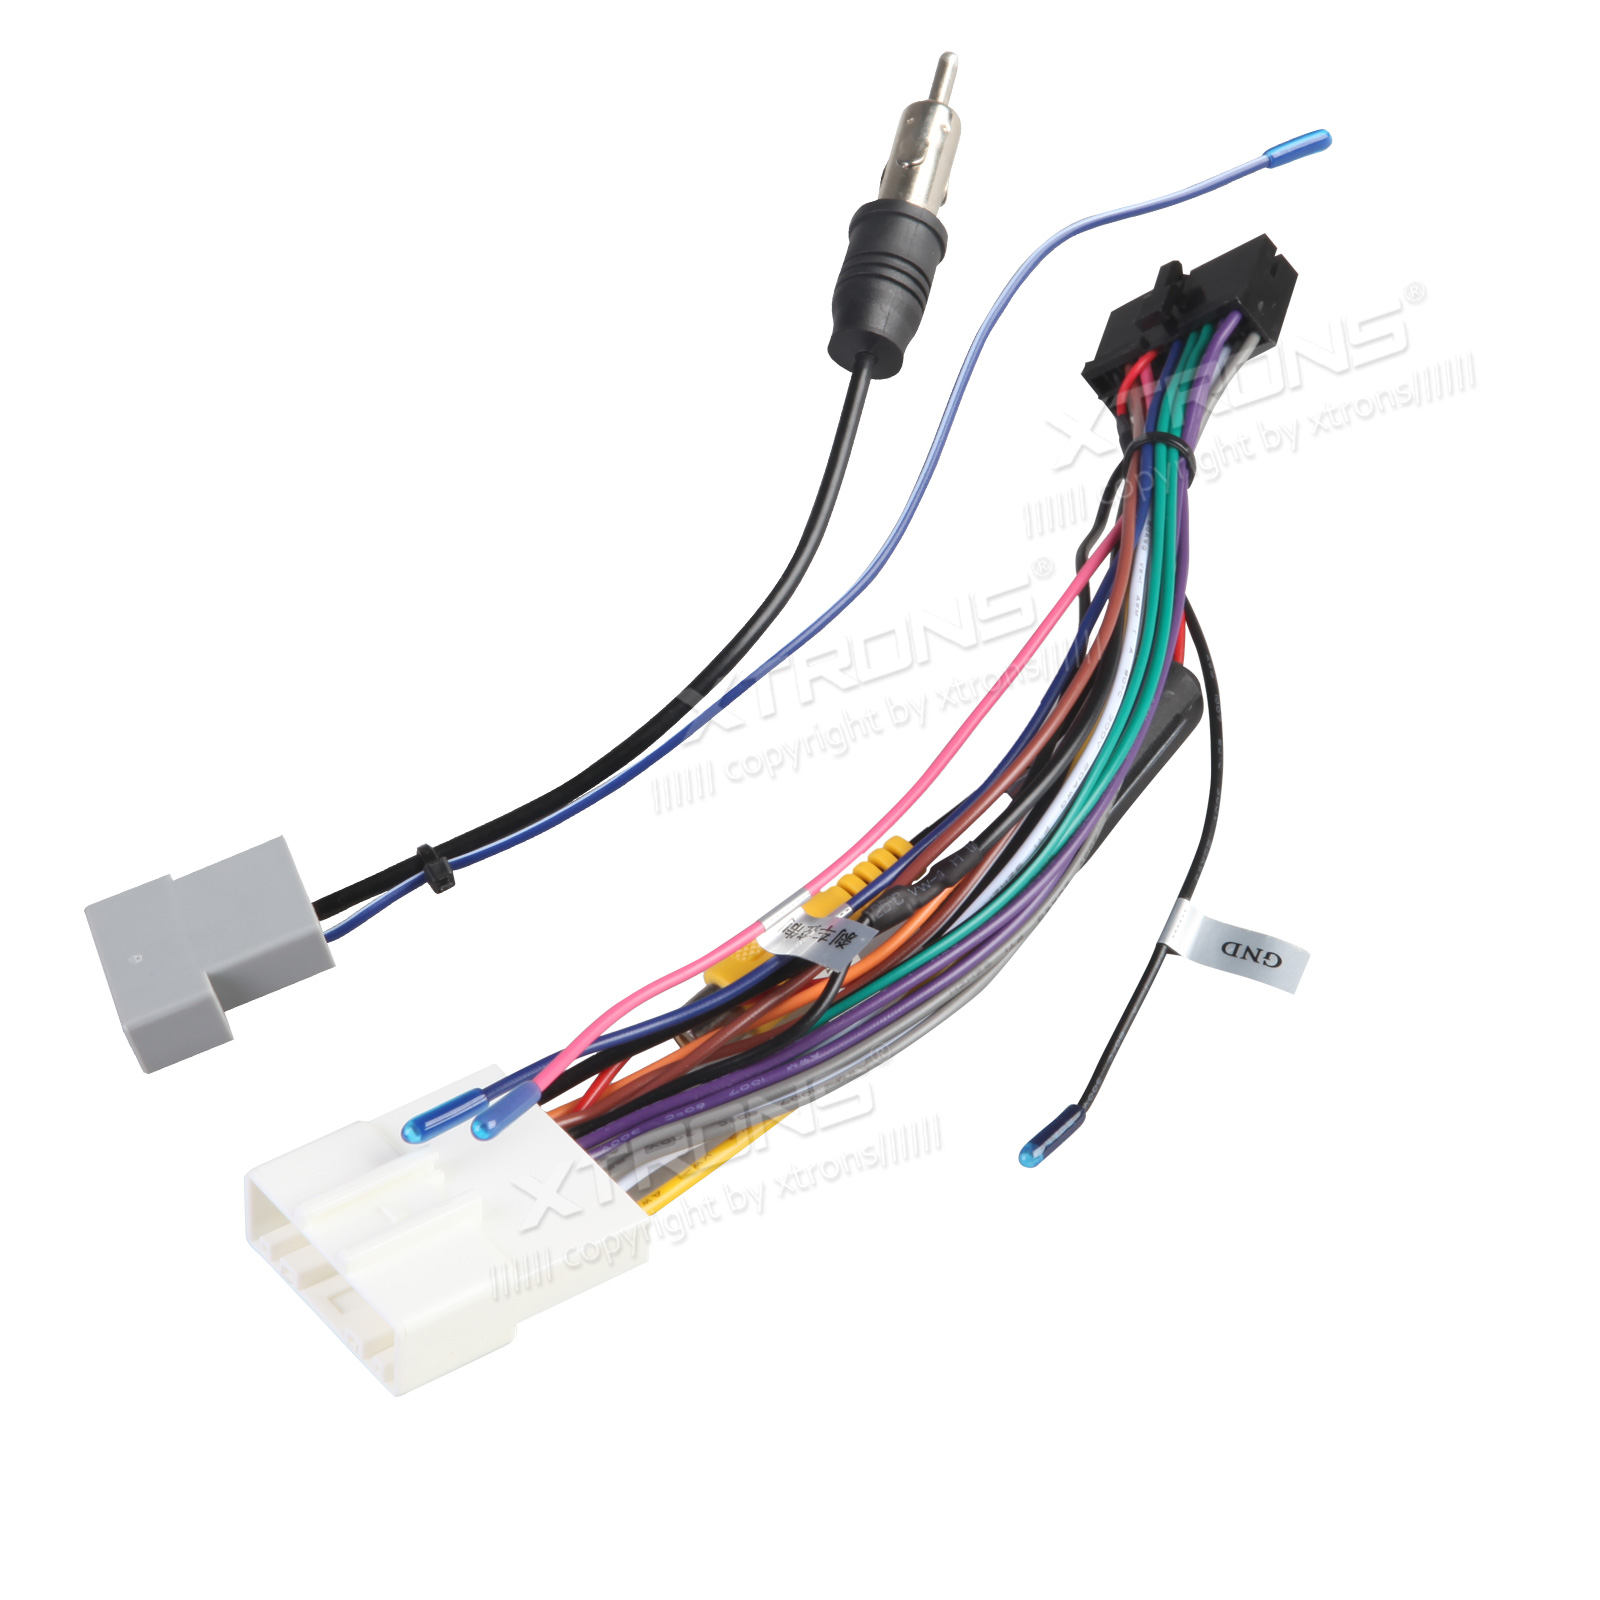 Buy Nissan Iso Wiring Harness Connector Xtrons Chrysler Adapter For The Installation Of Td626ab Td626abd In Cars